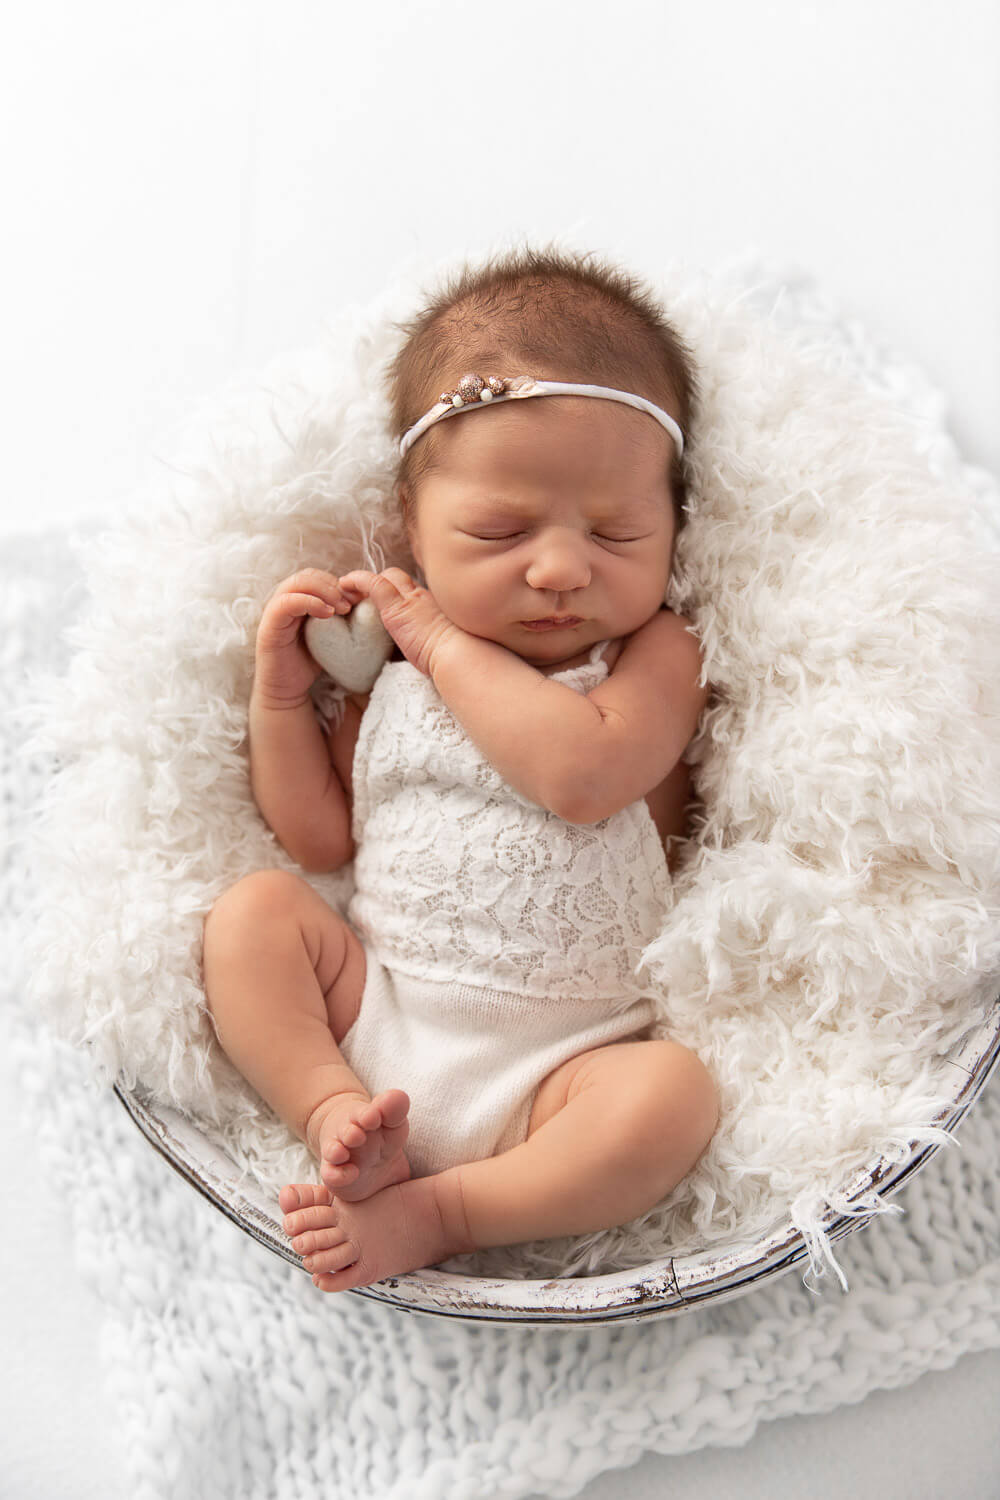 newborn baby girl wearing a white lace romper laying in a bucket with white fur holding a white felt heart